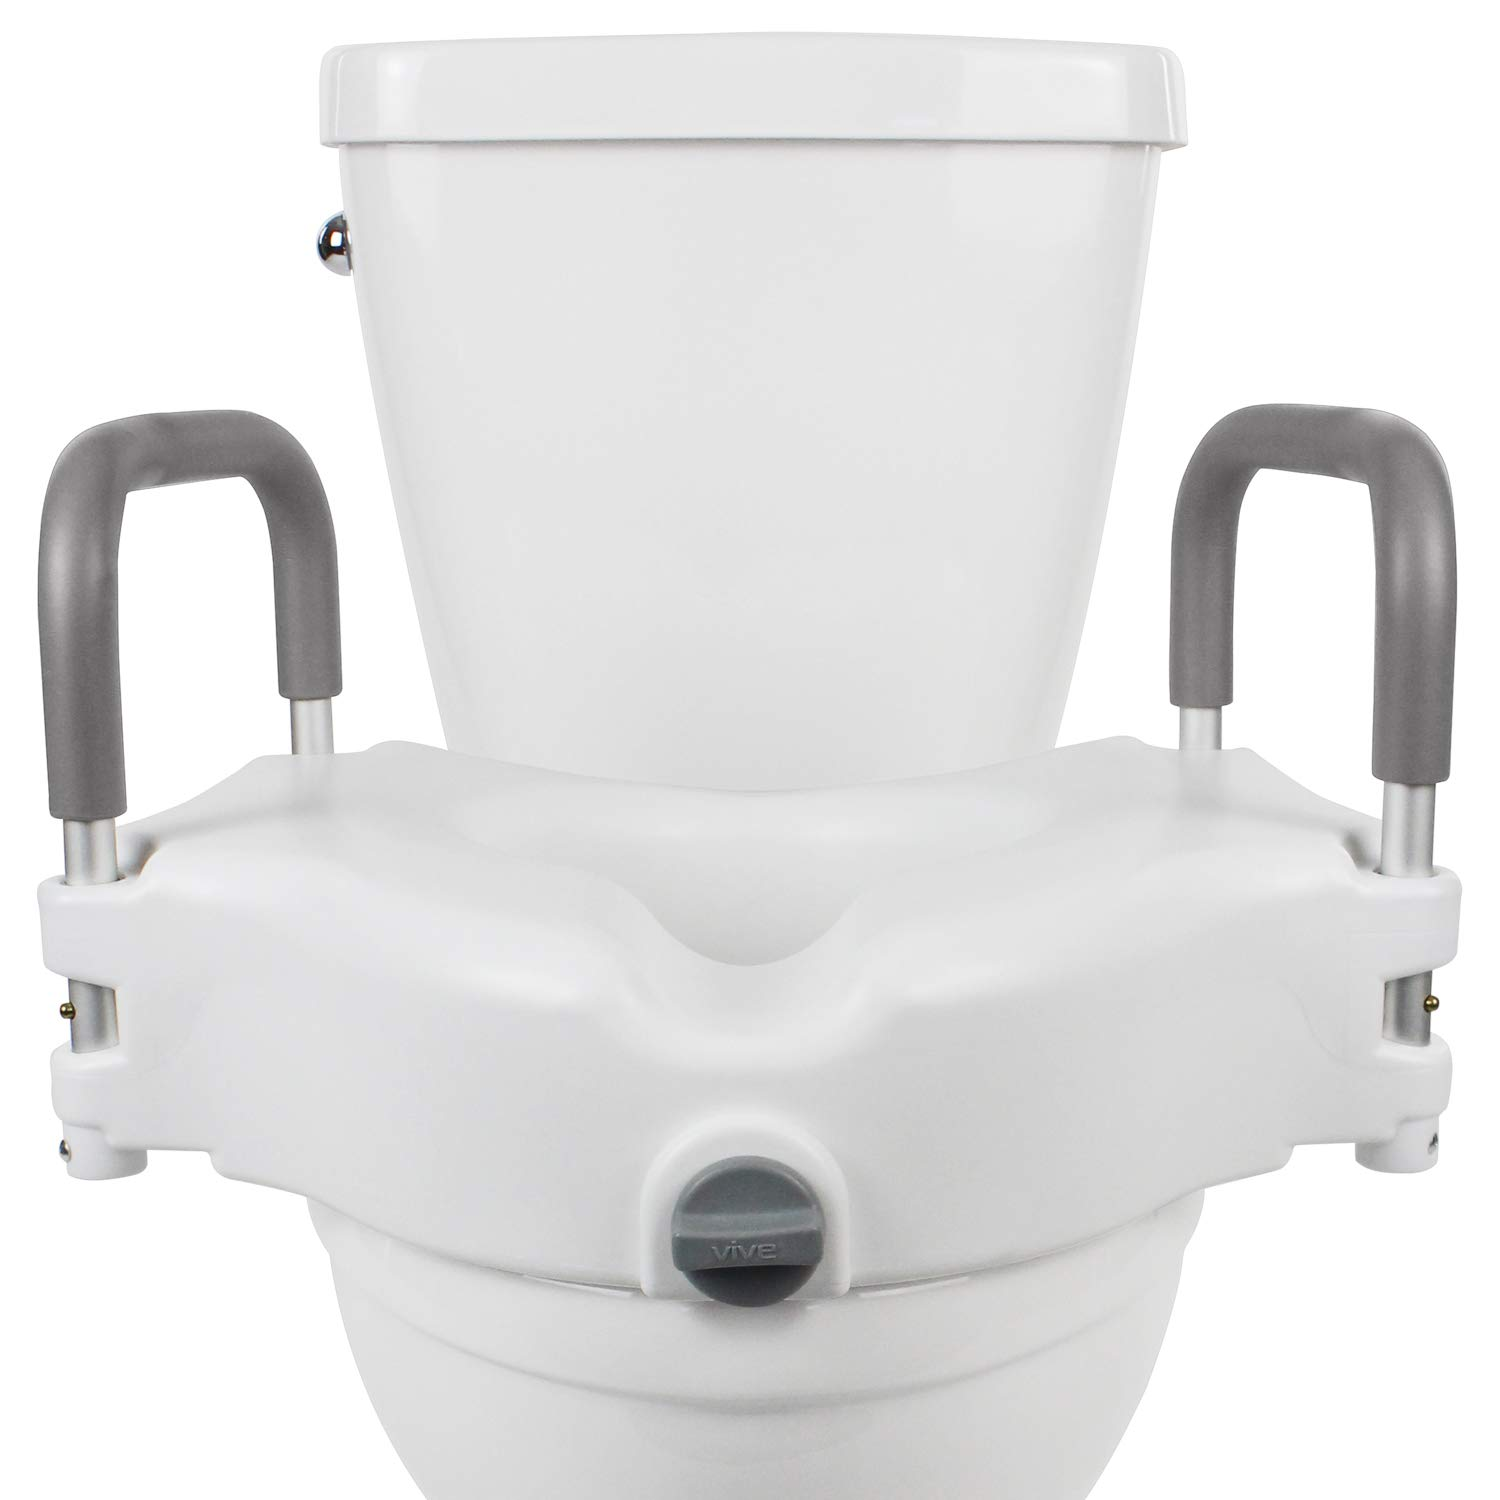 Outstanding Vive Raised Toilet Seat 5 Portable Elevated Riser With Padded Handles Elongated And Standard Fit Commode Lifter Bathroom Safety Extender Alphanode Cool Chair Designs And Ideas Alphanodeonline